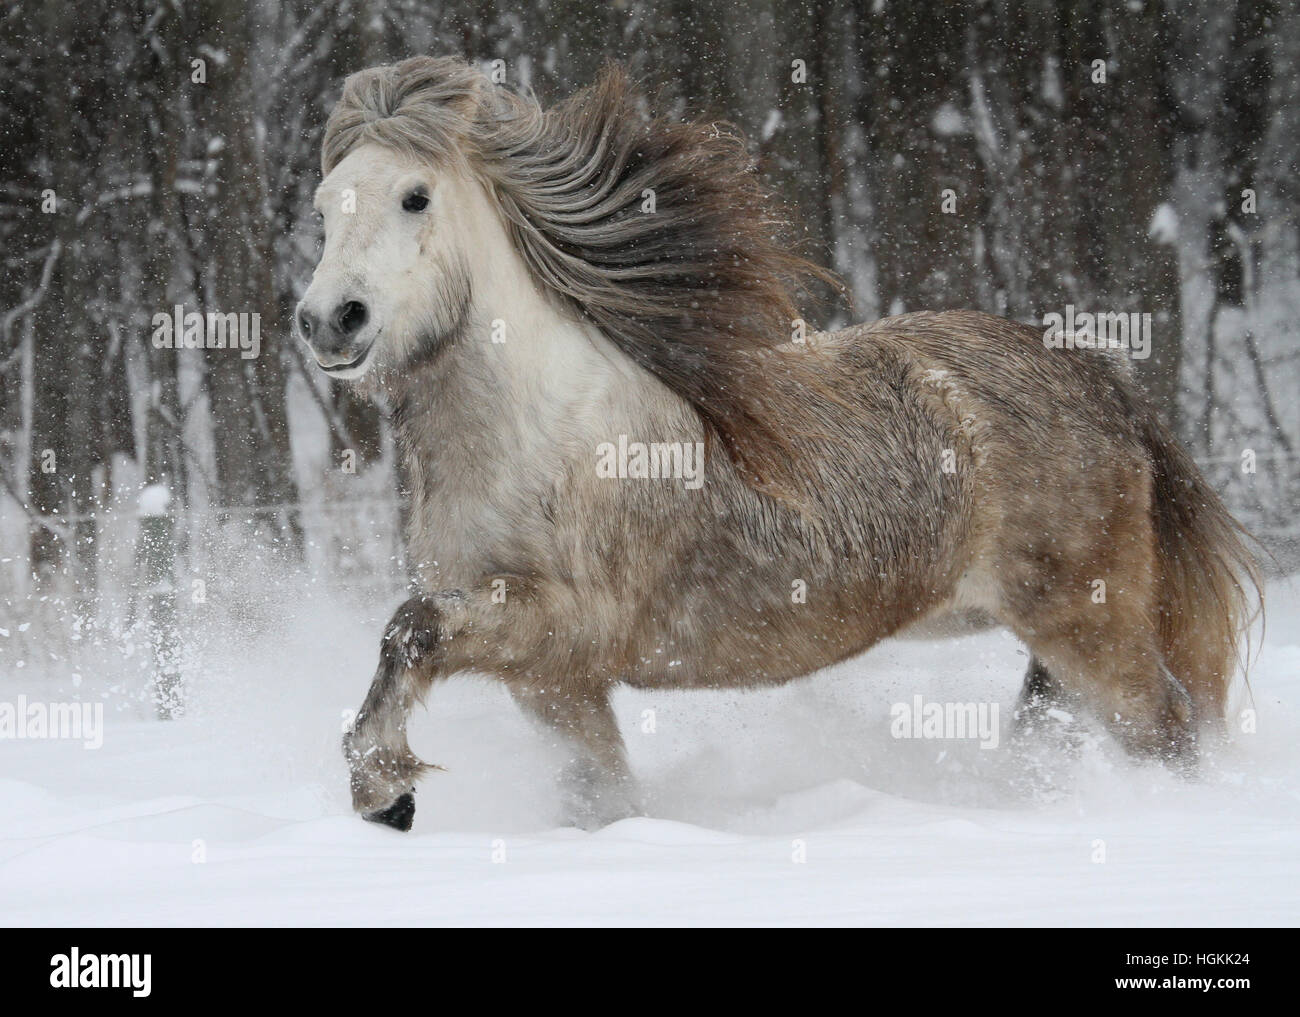 A dapple grey Icelandic horse mare charges through the snow - Stock Image